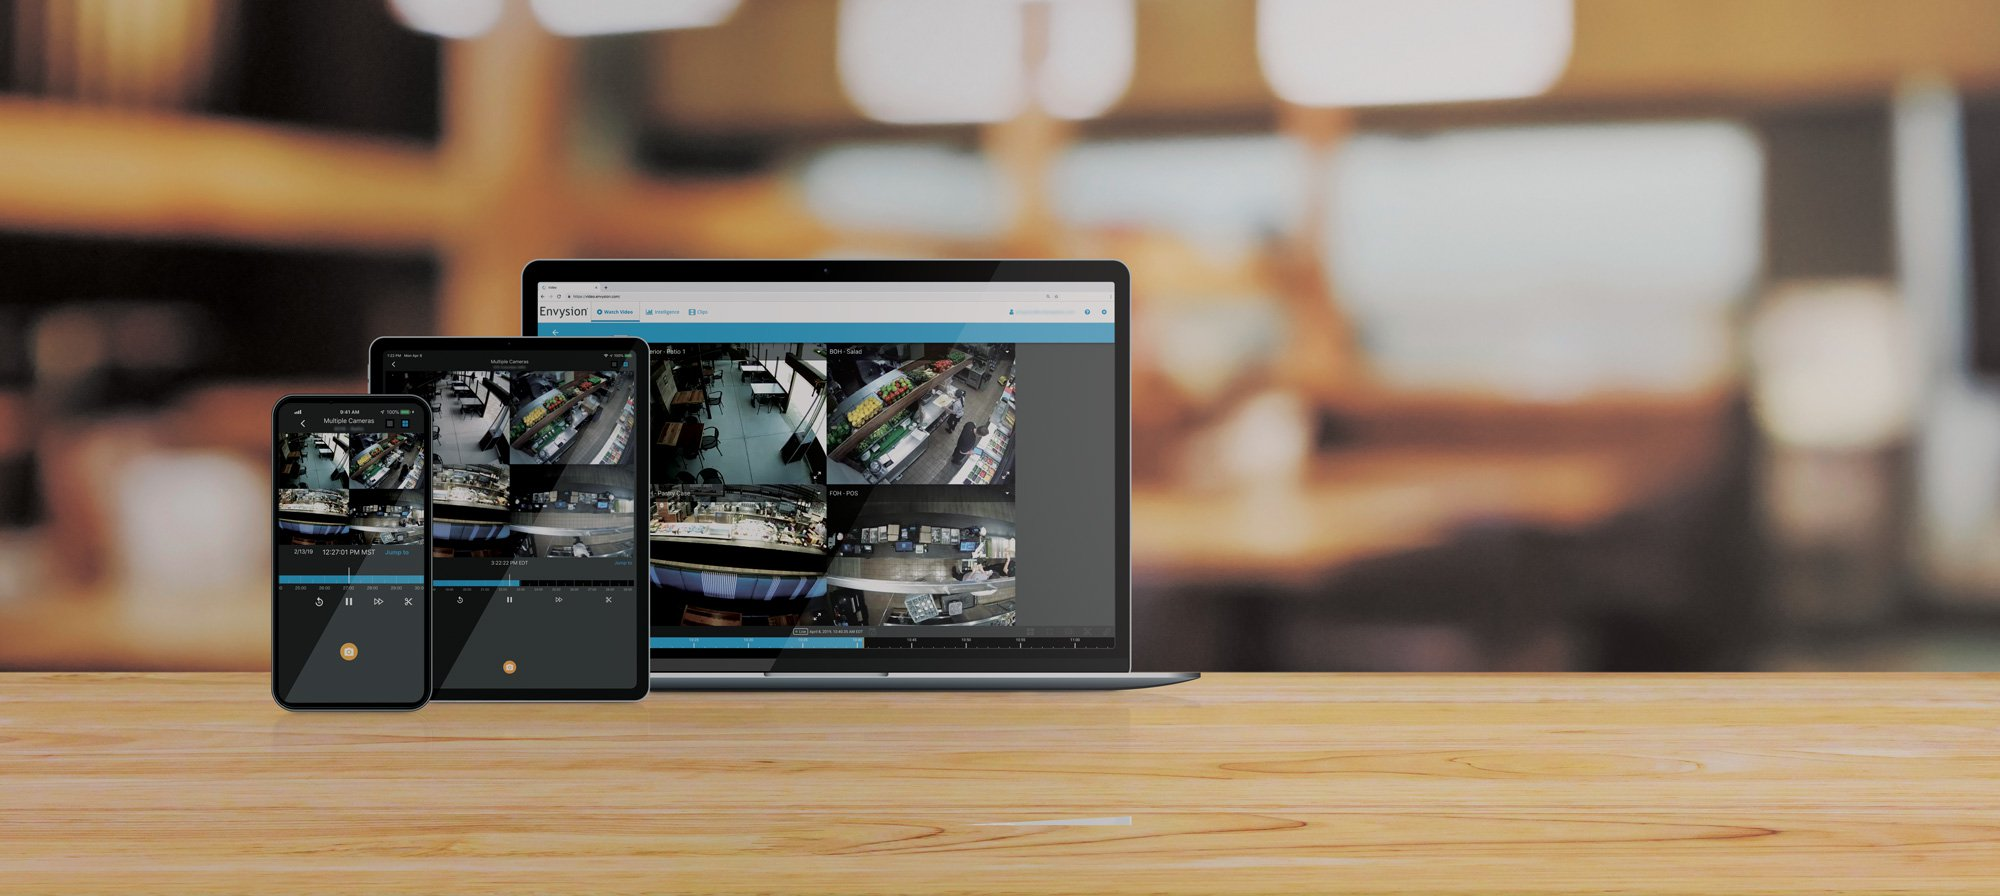 Envysion Introduces New Video Experience to Revolutionize Surveillance and Loss Prevention